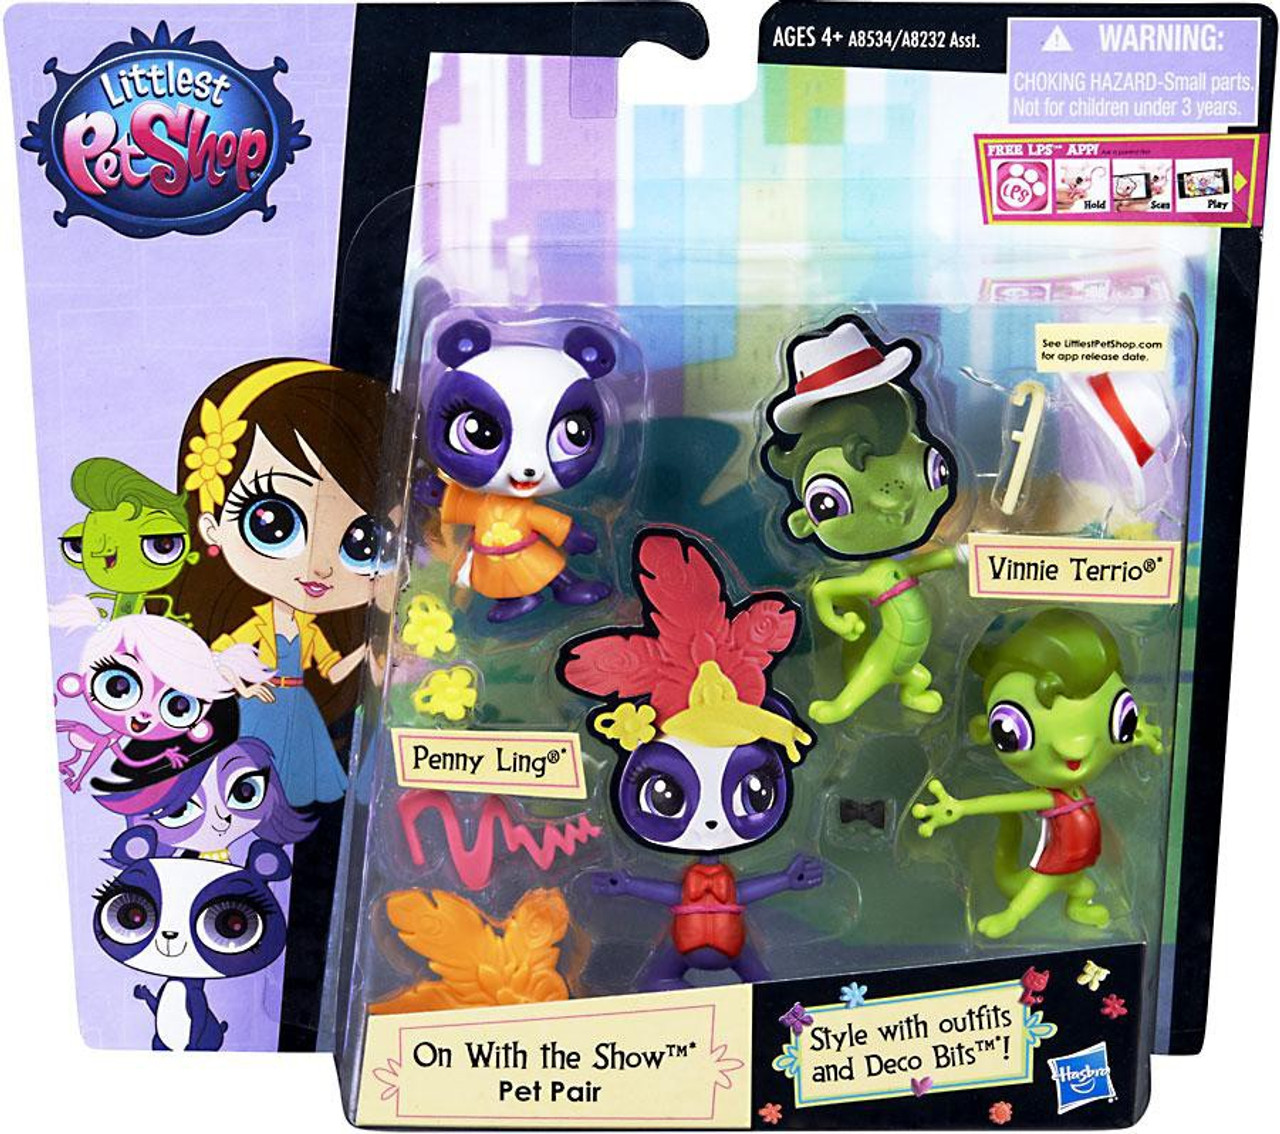 Give your little girl a toy that lets her imagination soar with the Blythe Littlest Pet Shop Pet Jet. This pet shop comes with a Blythe doll, pet bulldog, plane, and many other accessories for .